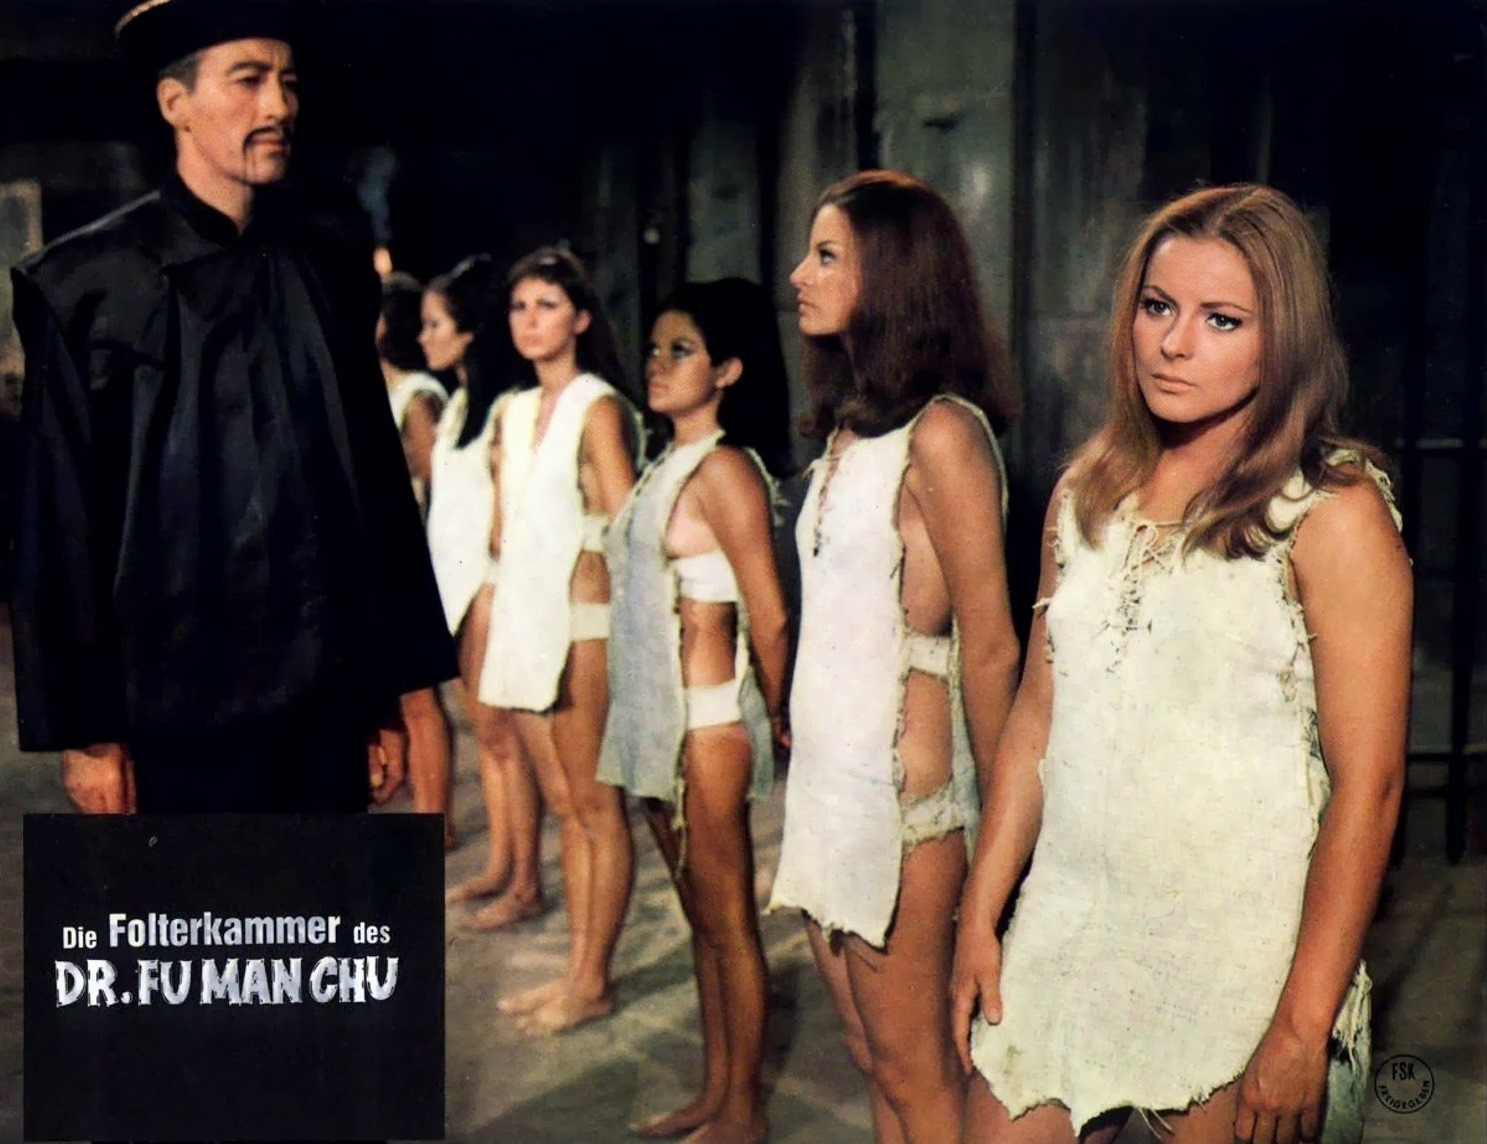 Fu Manchu (Christopher Lee) surveys his collection of women in The Castle of Fu Manchu (1969)